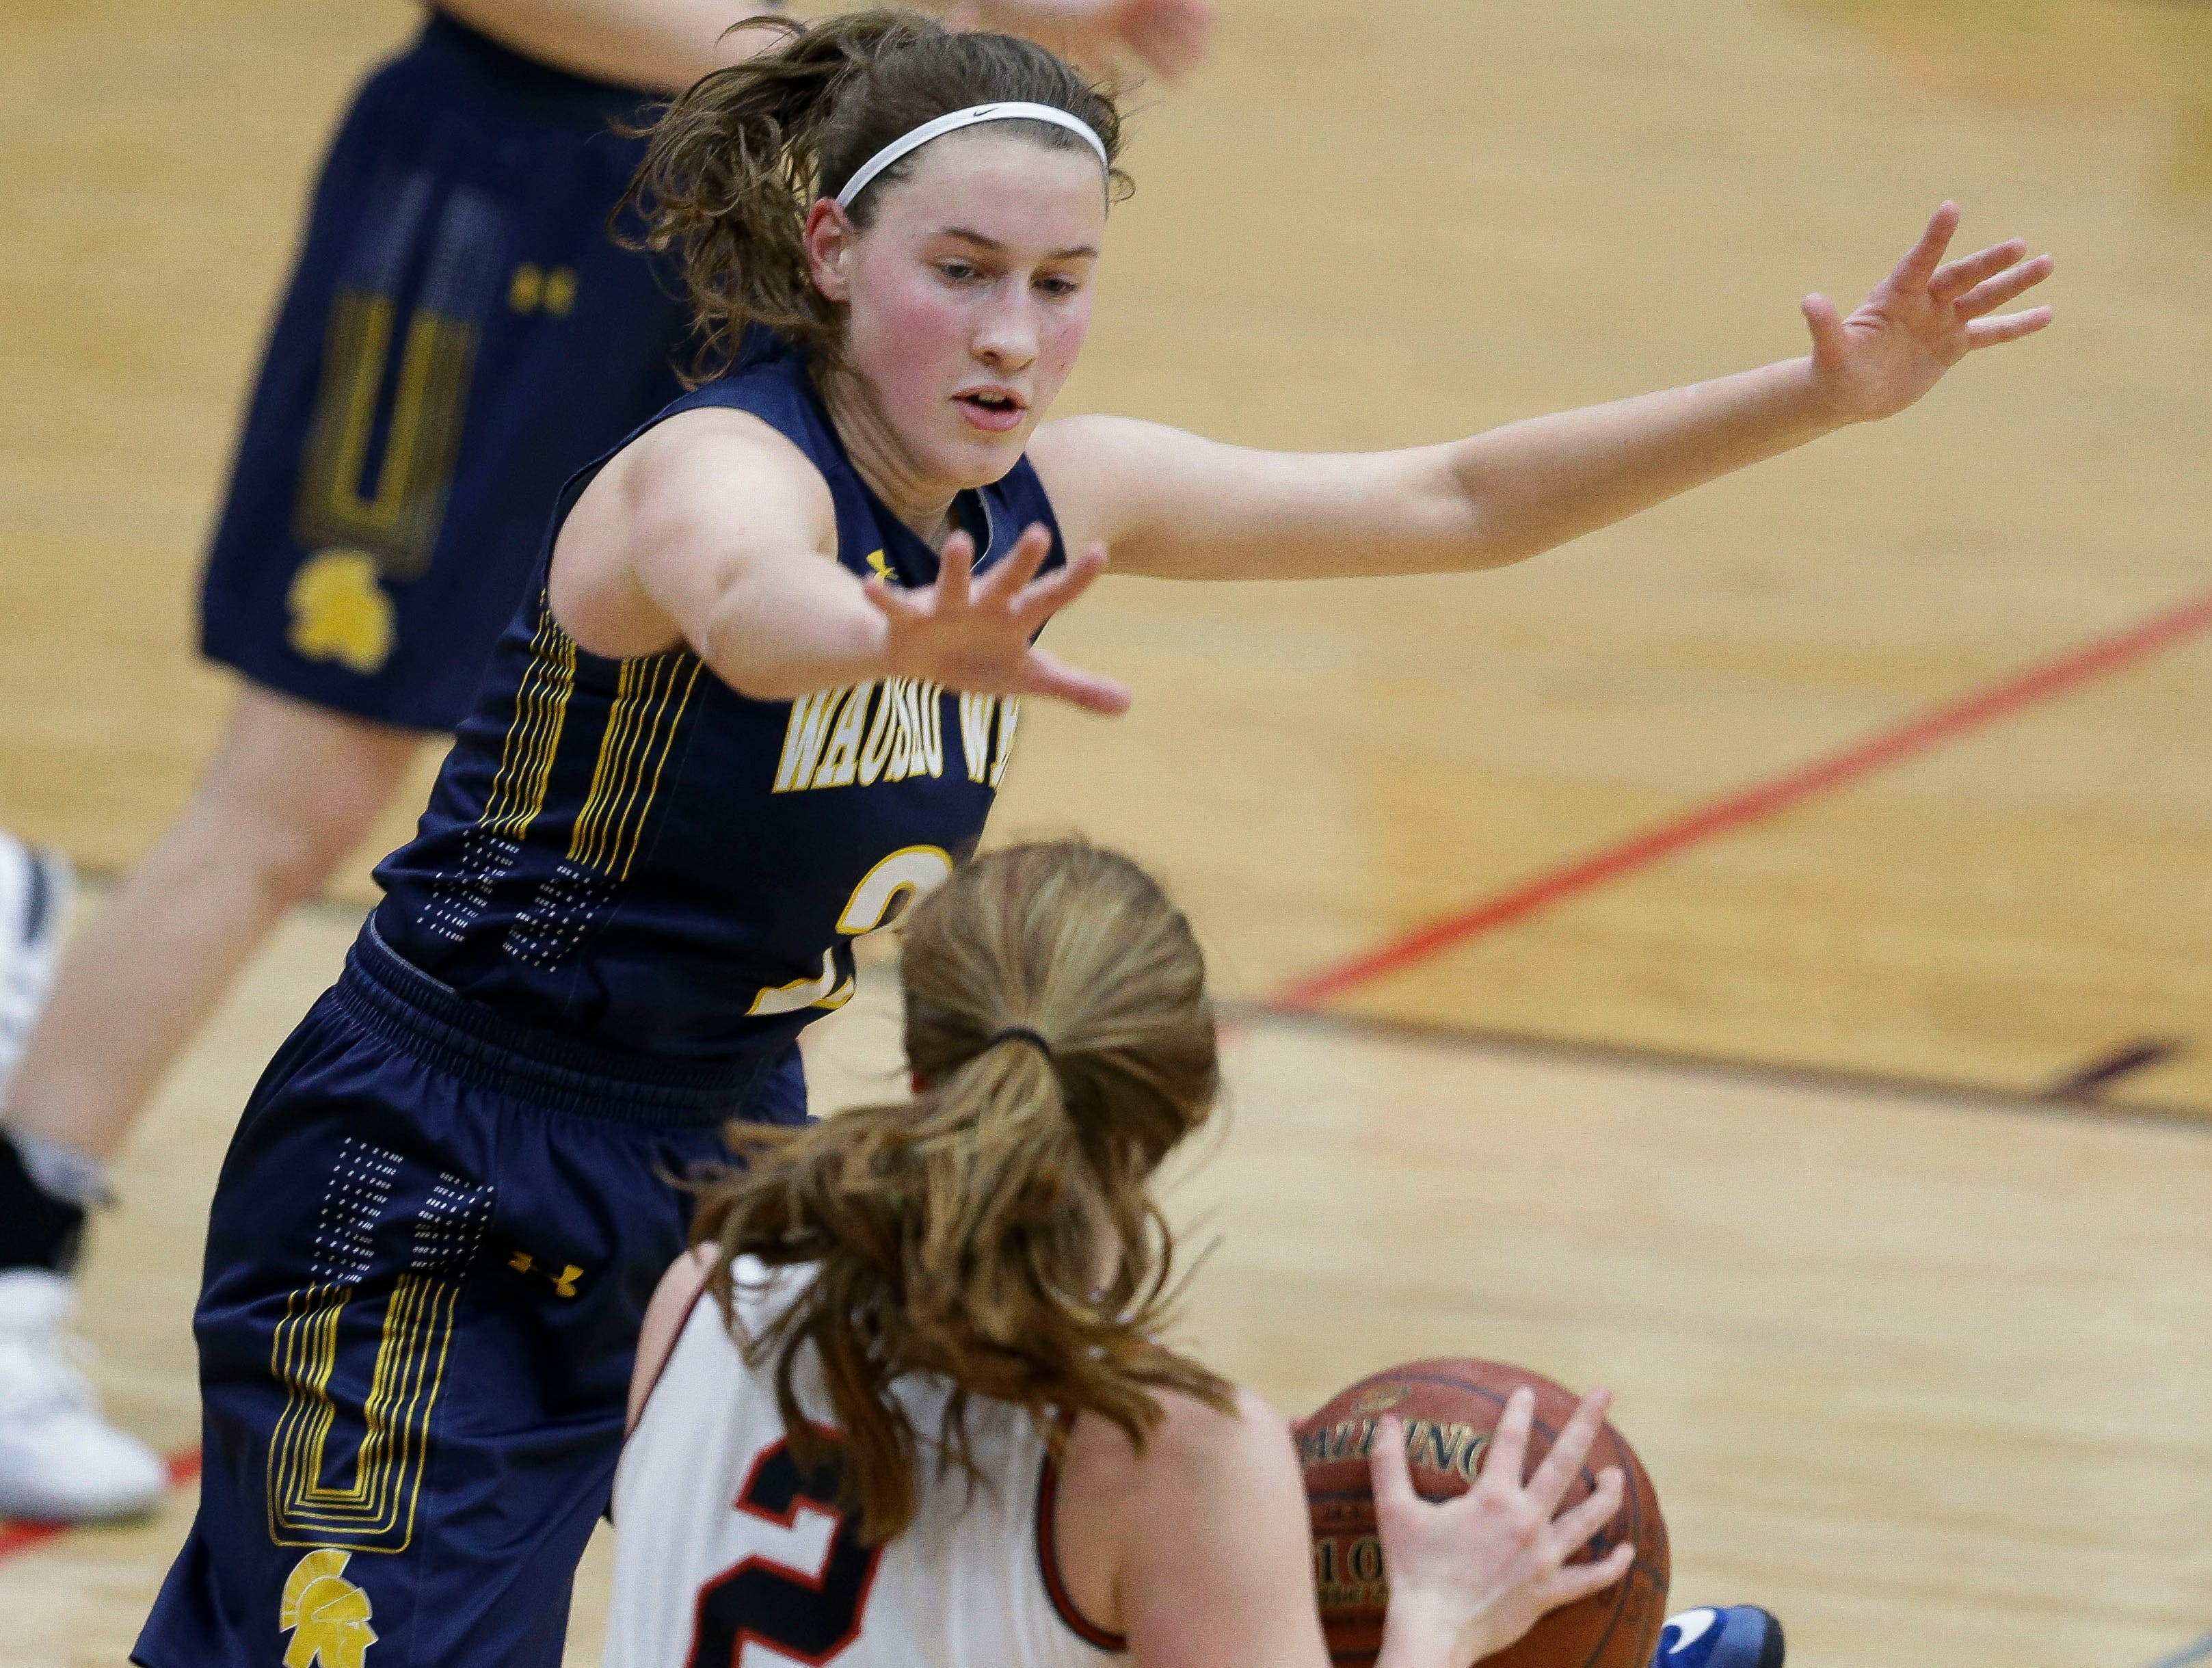 Wausau West's Kadie Deaton (3) defends against SPASH on Thursday, February 14, 2019, at SPASH in Stevens Point, Wis.Tork Mason/USA TODAY NETWORK-Wisconsin